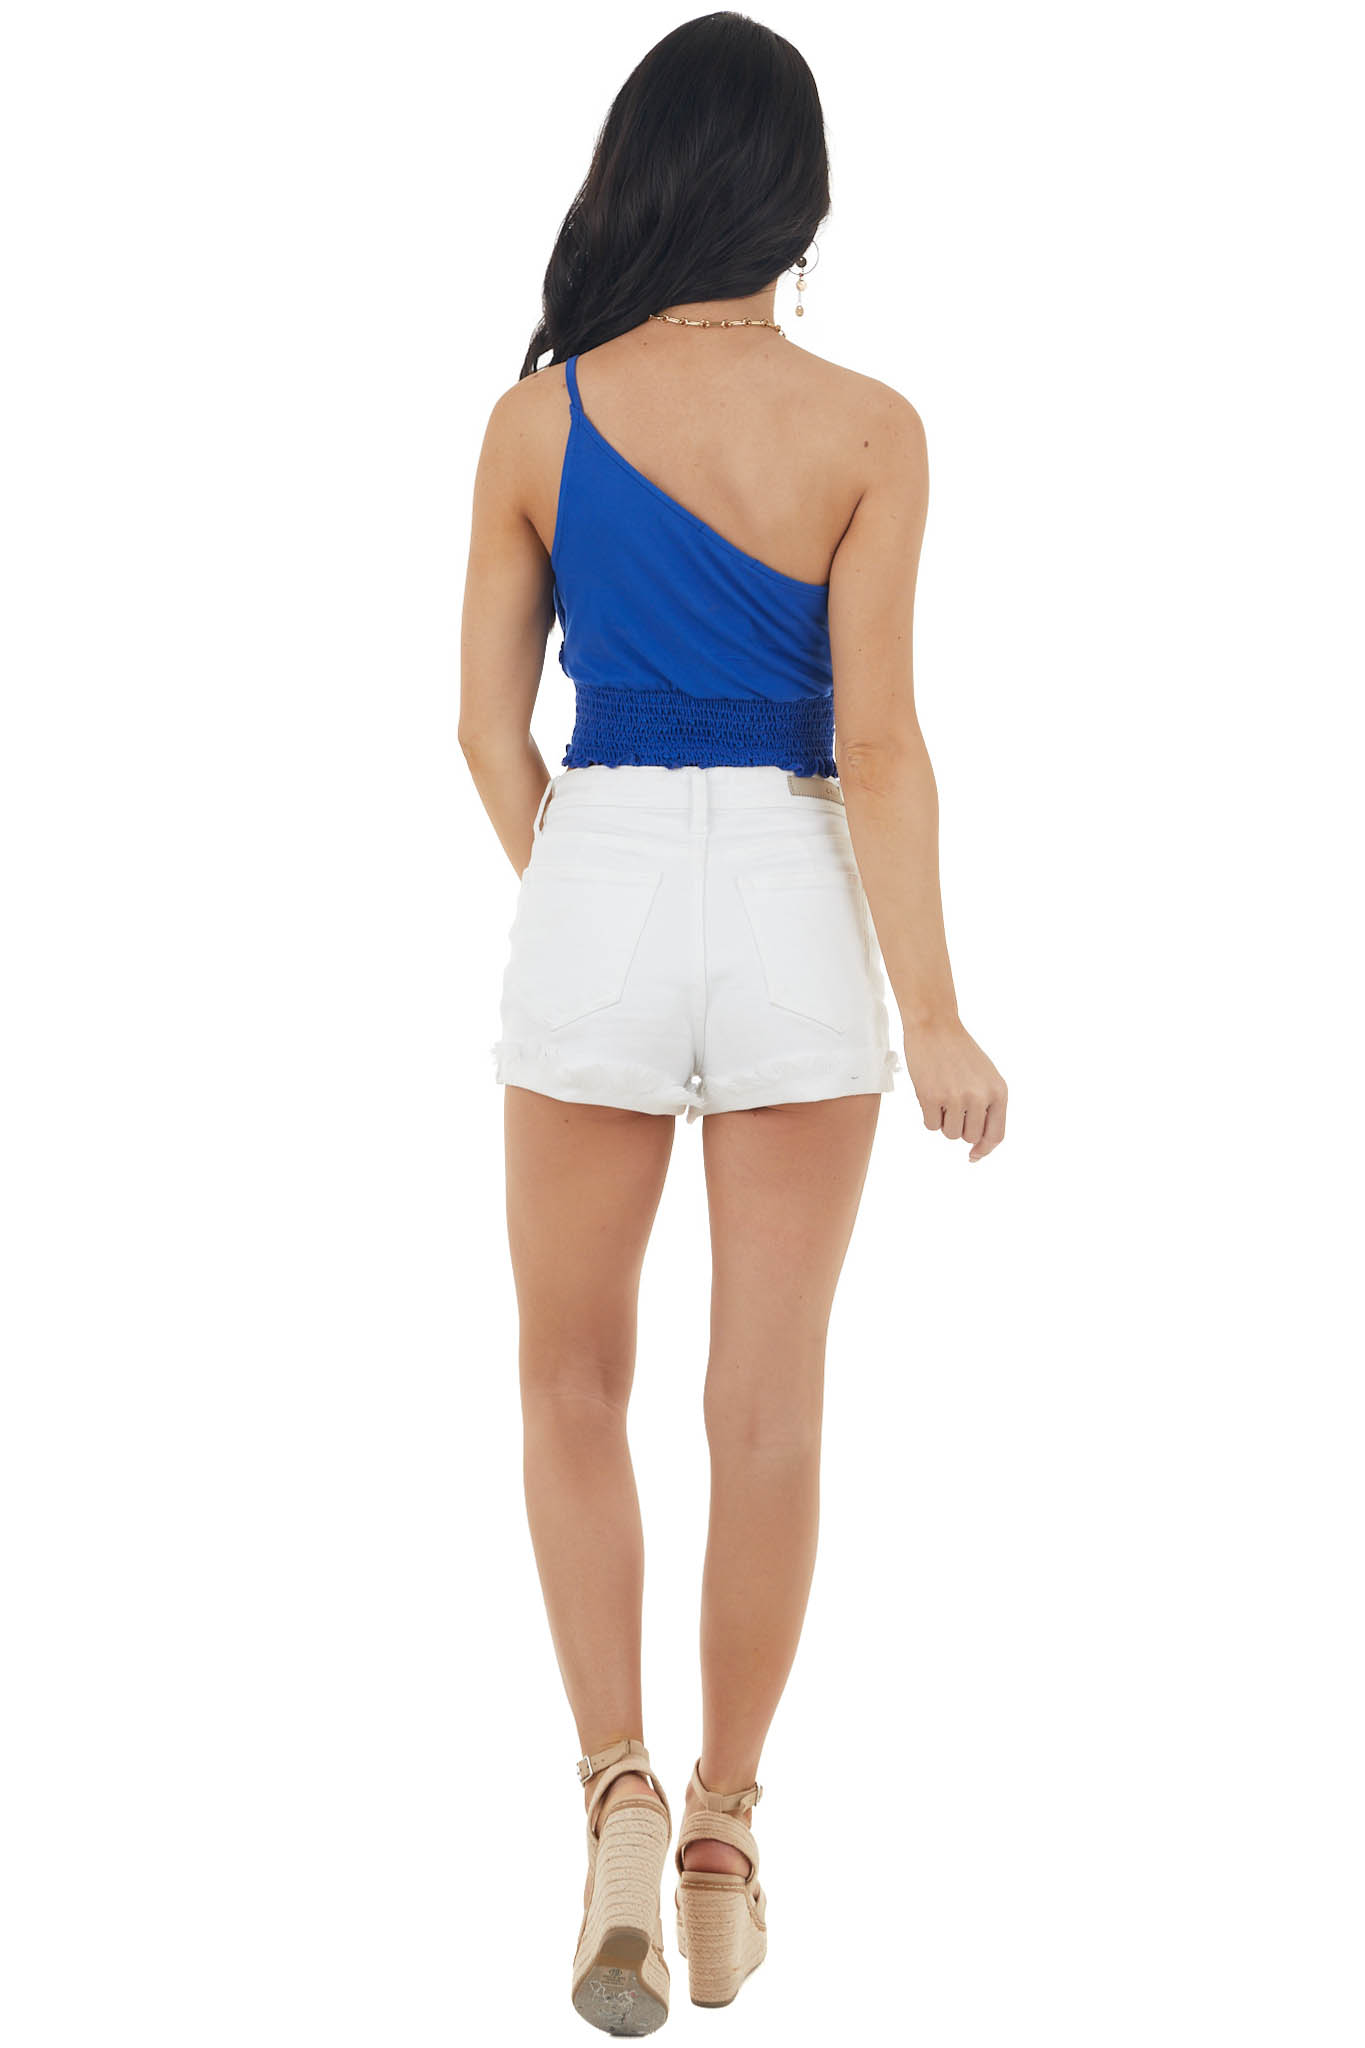 Royal Blue One Shoulder Knit Crop Top with Smocked Waist